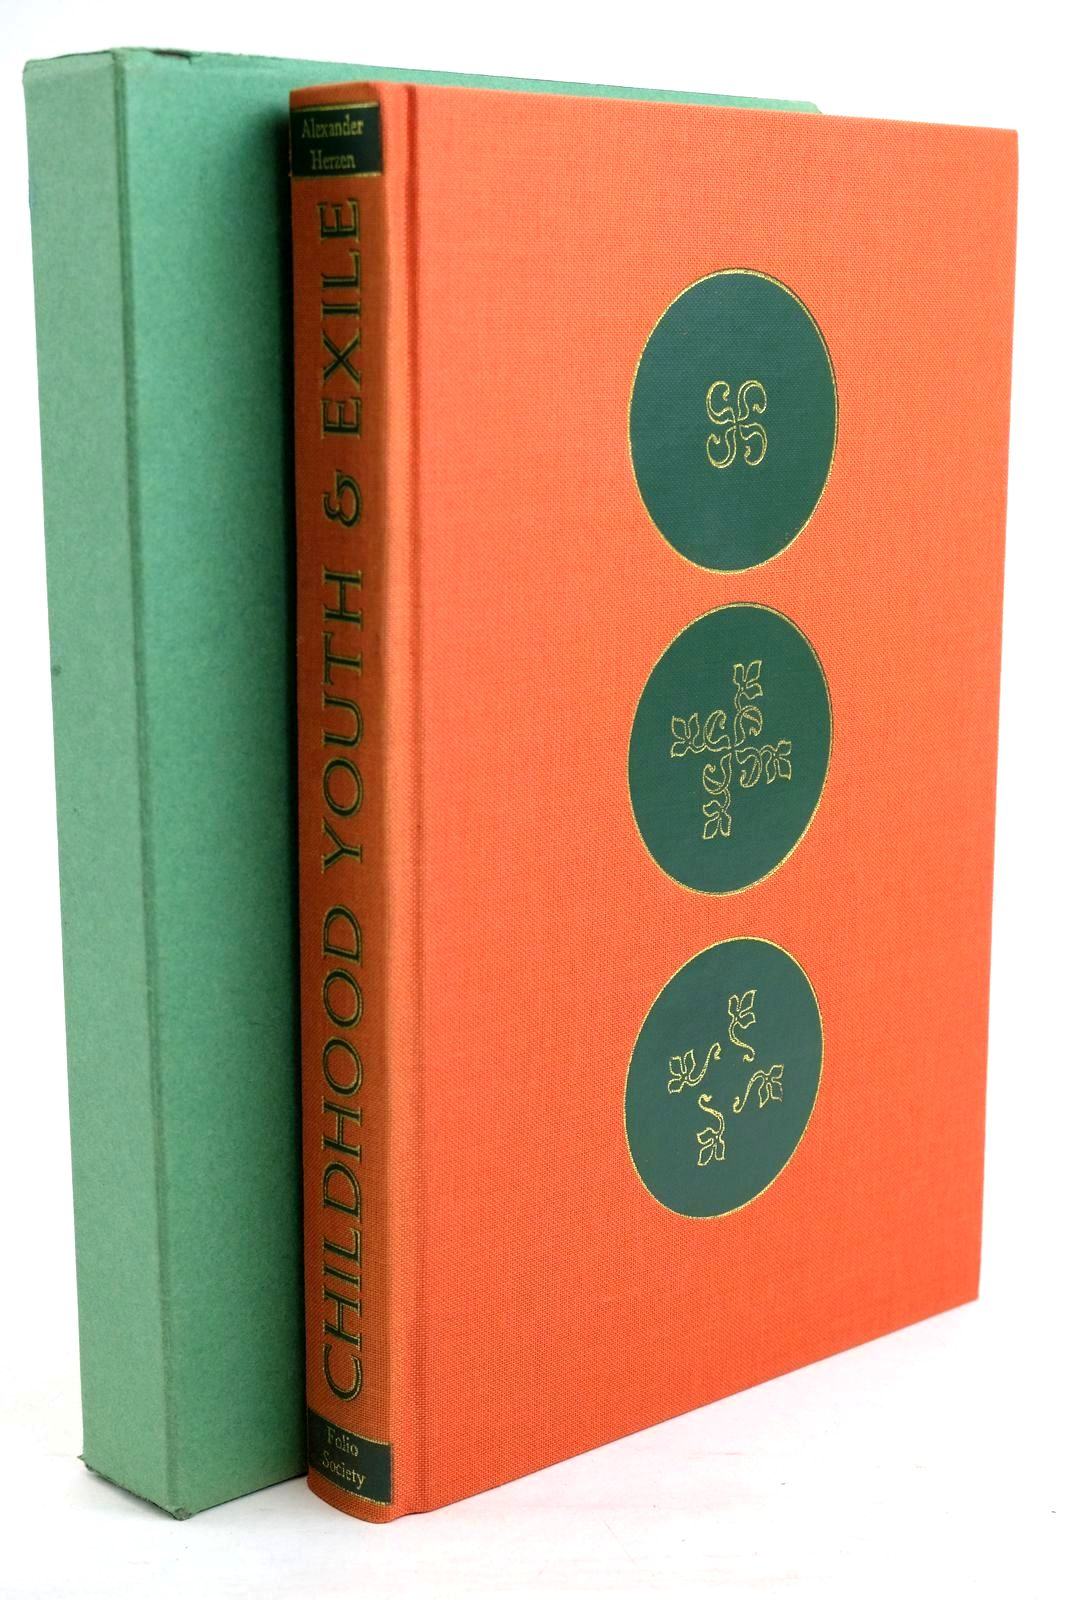 Photo of CHILDHOOD, YOUTH & EXILE written by Herzen, Alexander published by Folio Society (STOCK CODE: 1320323)  for sale by Stella & Rose's Books